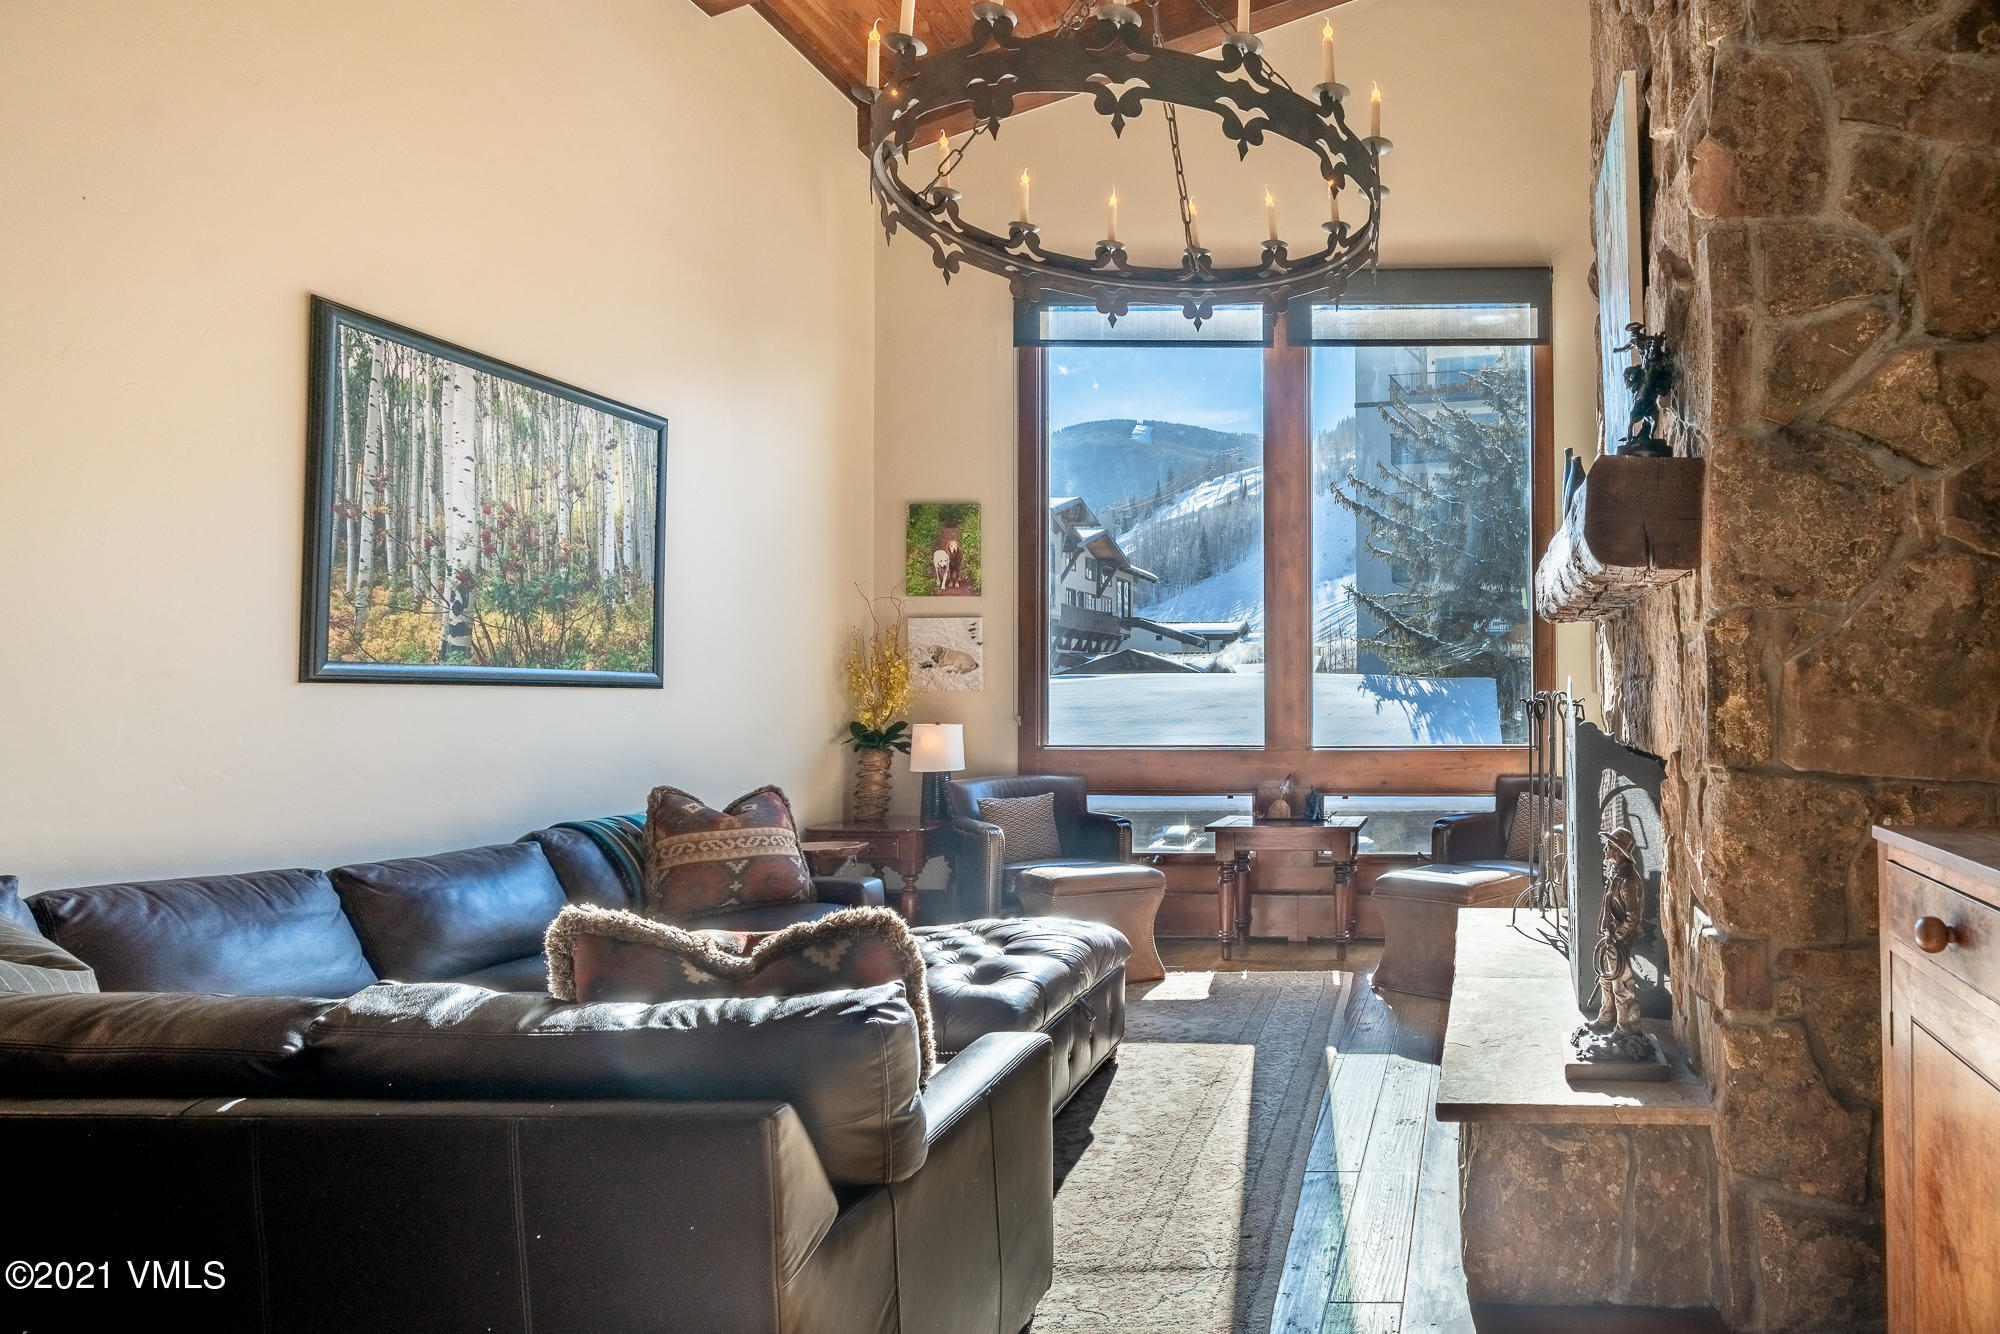 Rarely available Lodge at Vail three bedroom condominium with vaulted ceilings and views toward Vail Mountain. Fantastic amenity package with garage parking, spa, workout facilities, and two of Vail's best pools. The Lodge also offers an outstanding rental program.